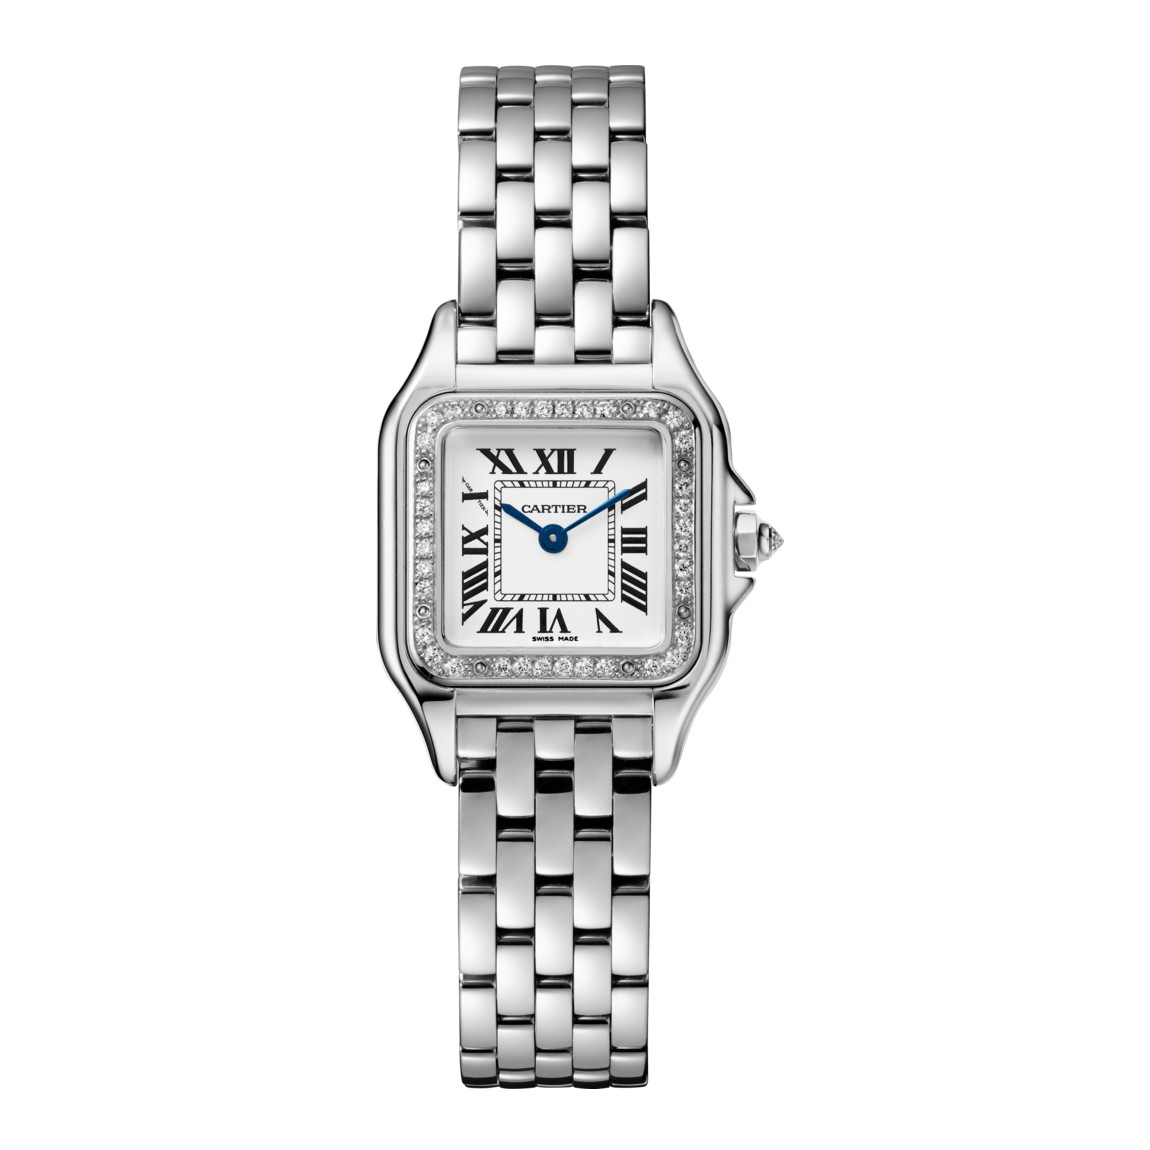 Panthère Small White Gold & Diamonds (WJPN0006)